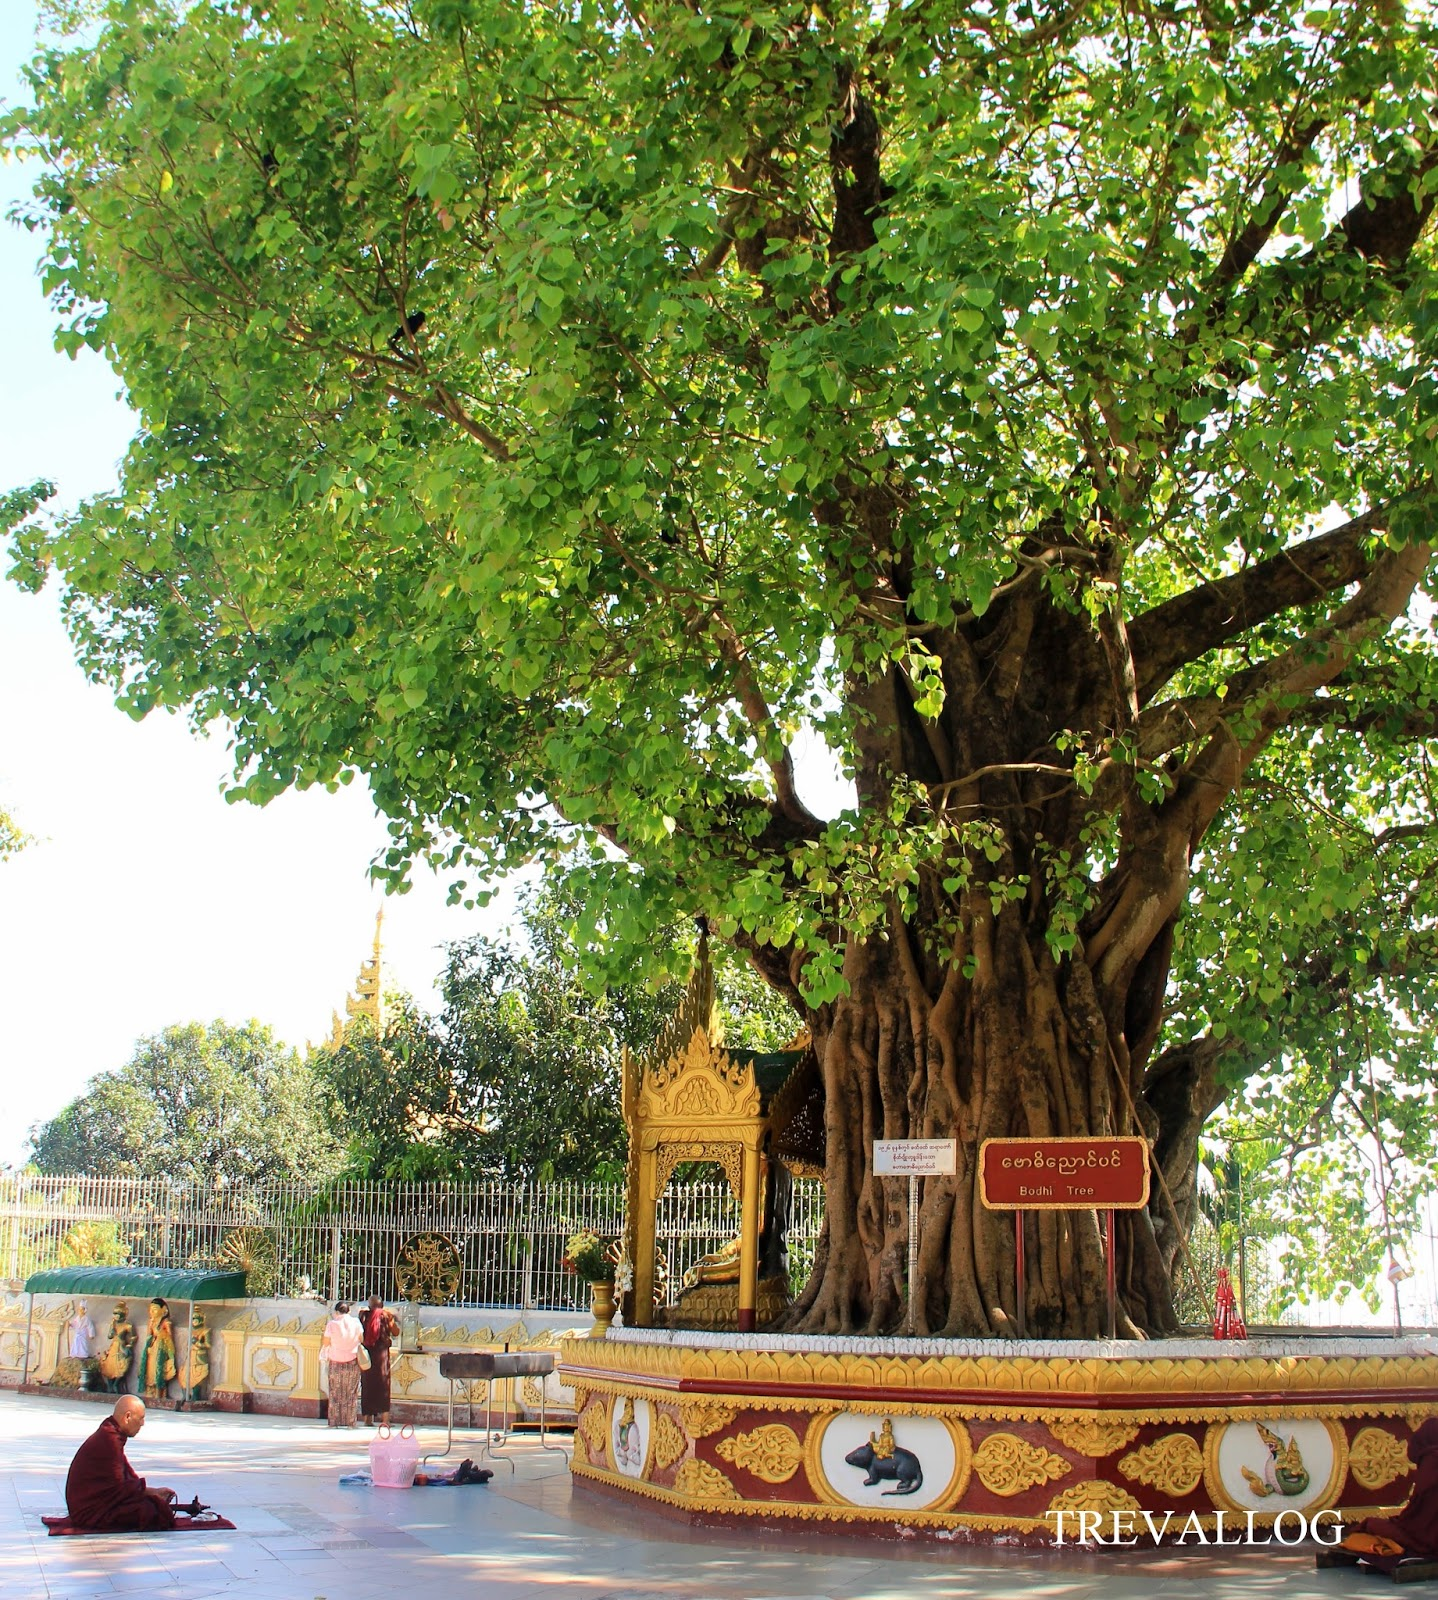 A monk praying under the sacred Bodhi Tree in Shwedagon Pagoda, Yangon